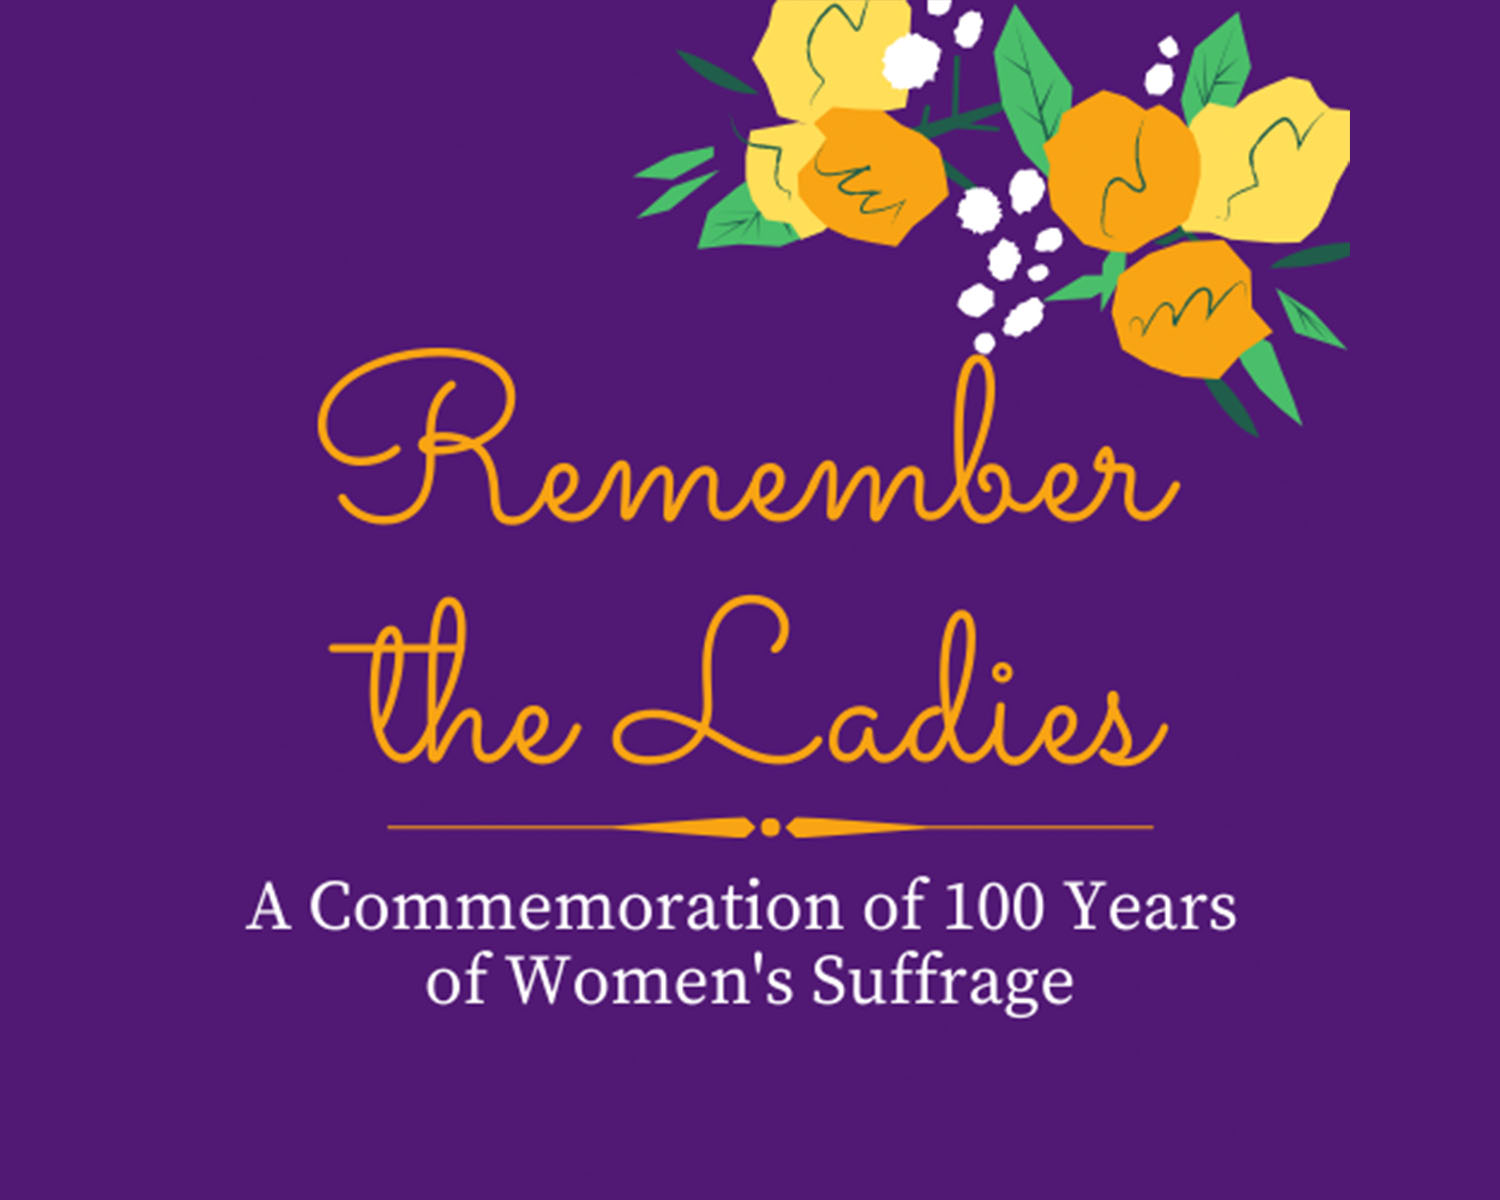 Remember the Ladies words on purple background with flowers